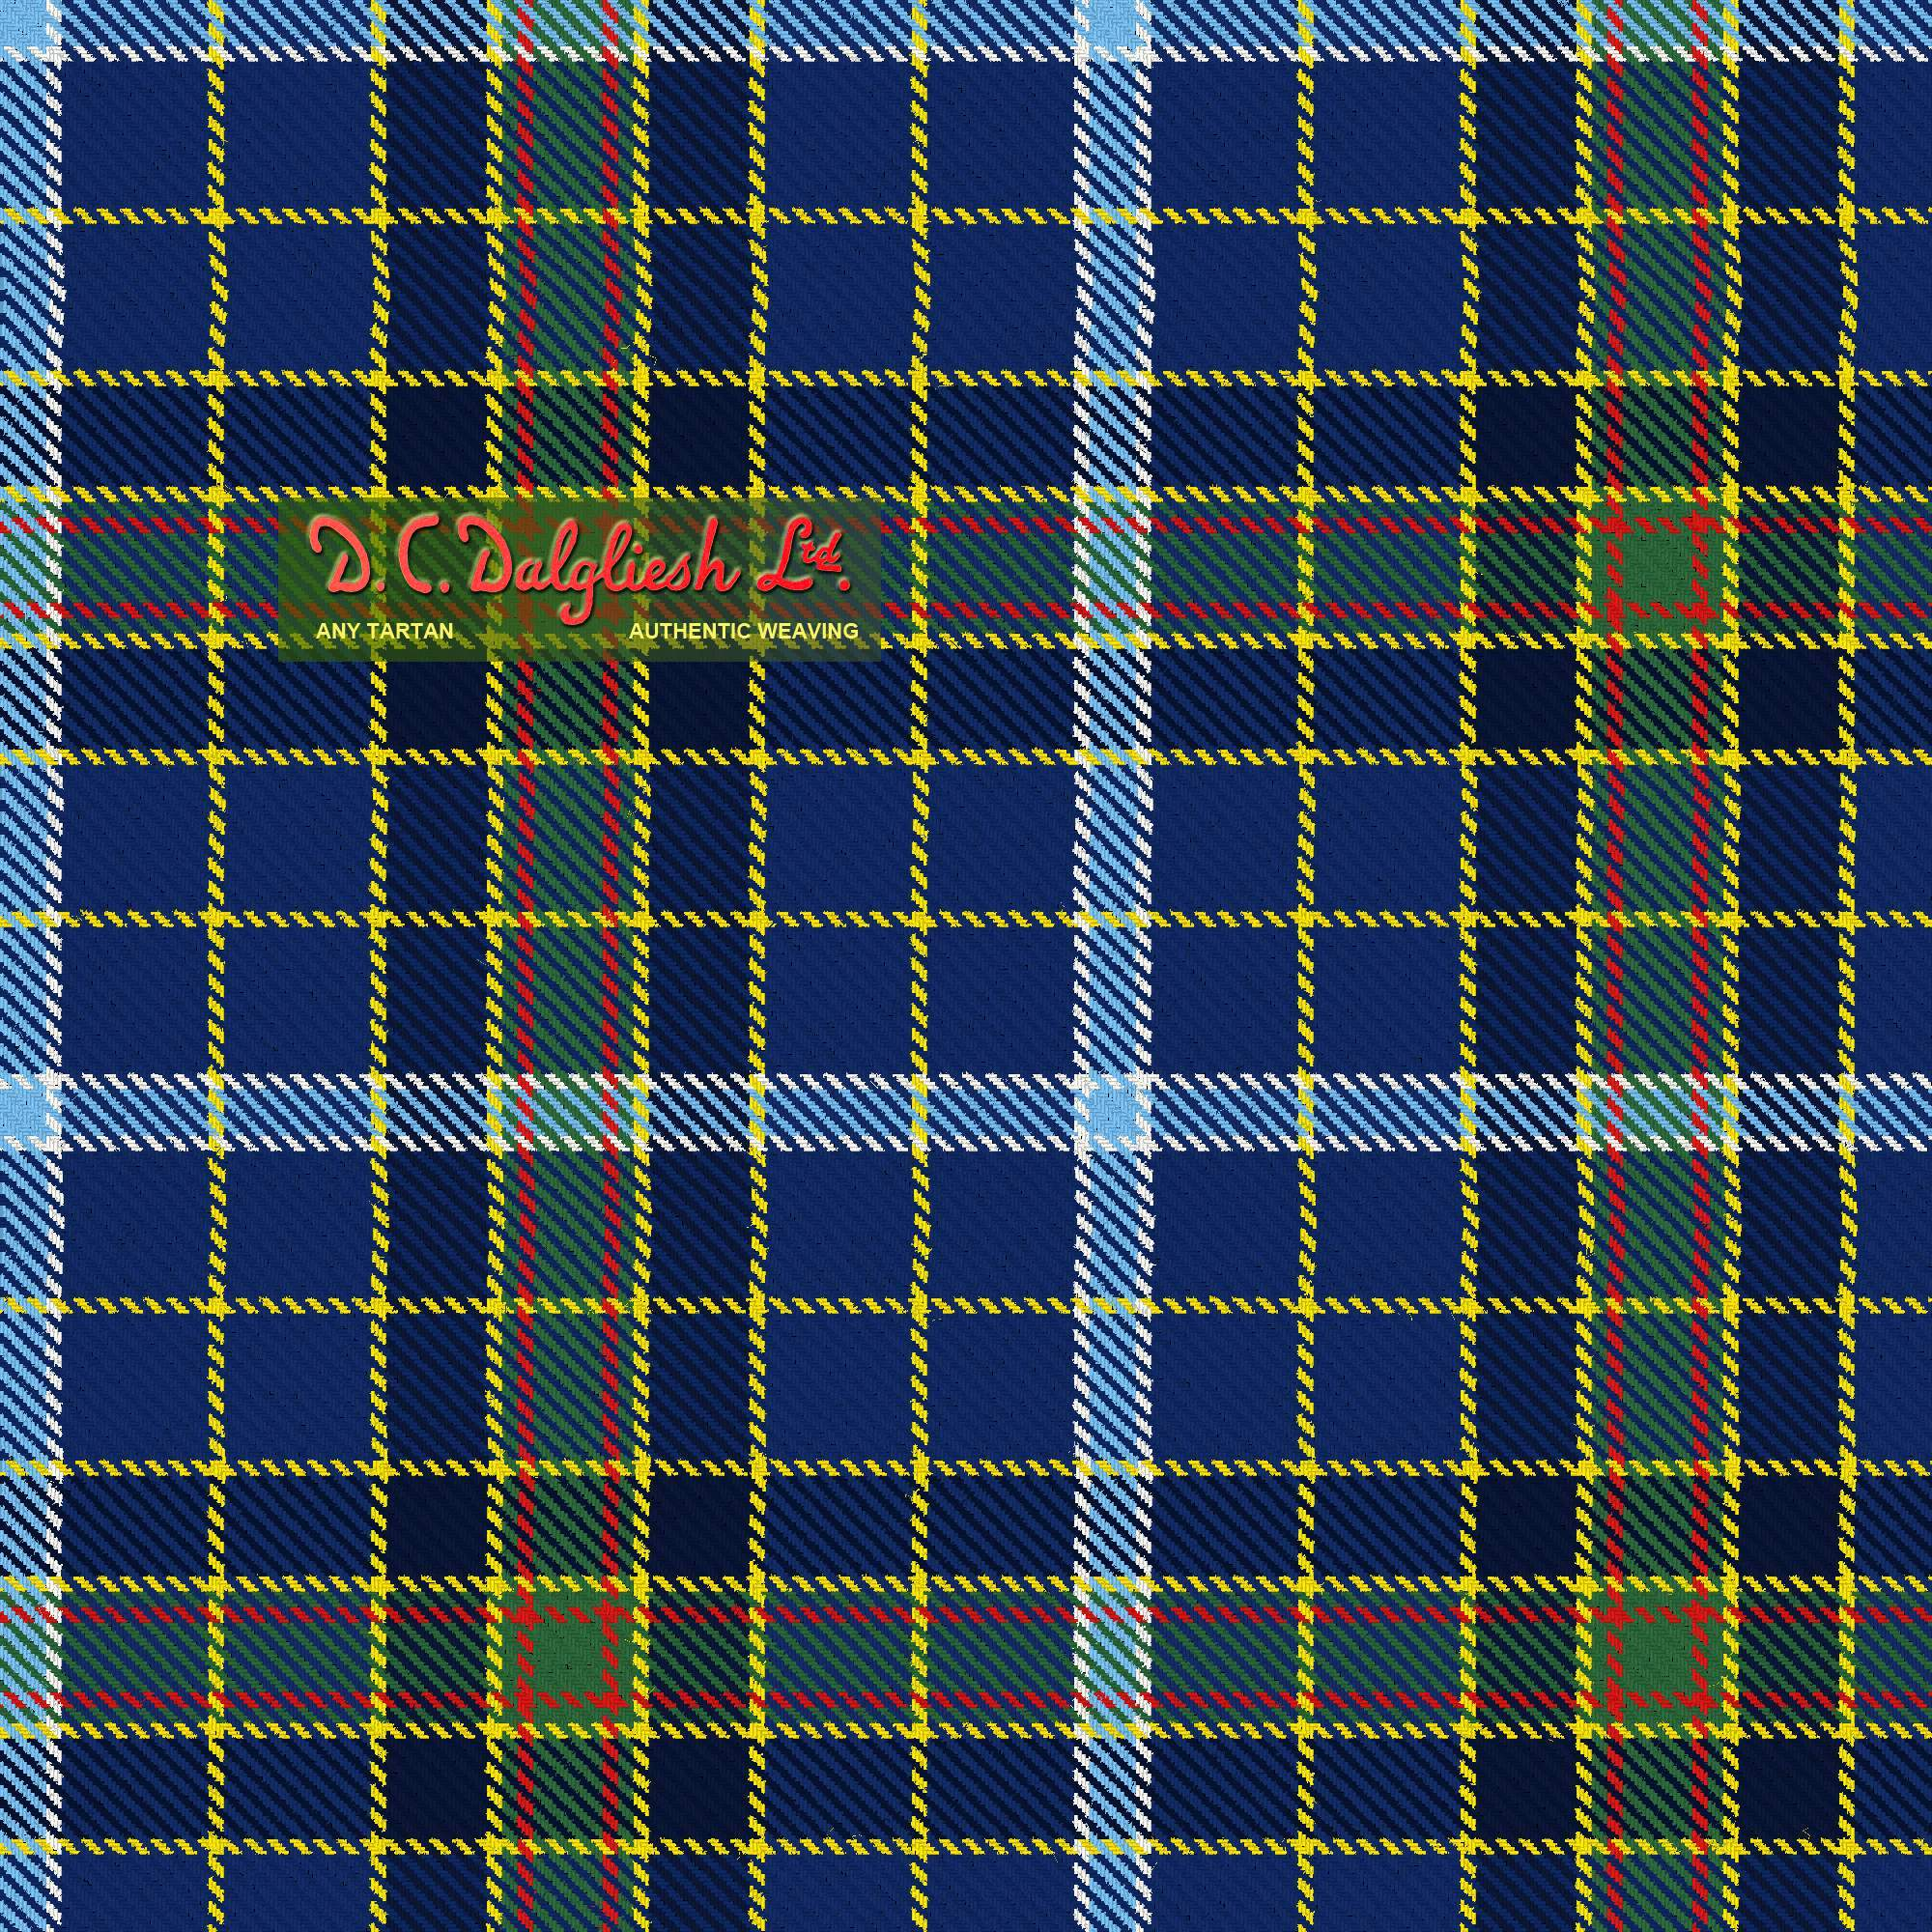 Knox 2 Fabric By Dc Dalgliesh Hand Crafted Tartans